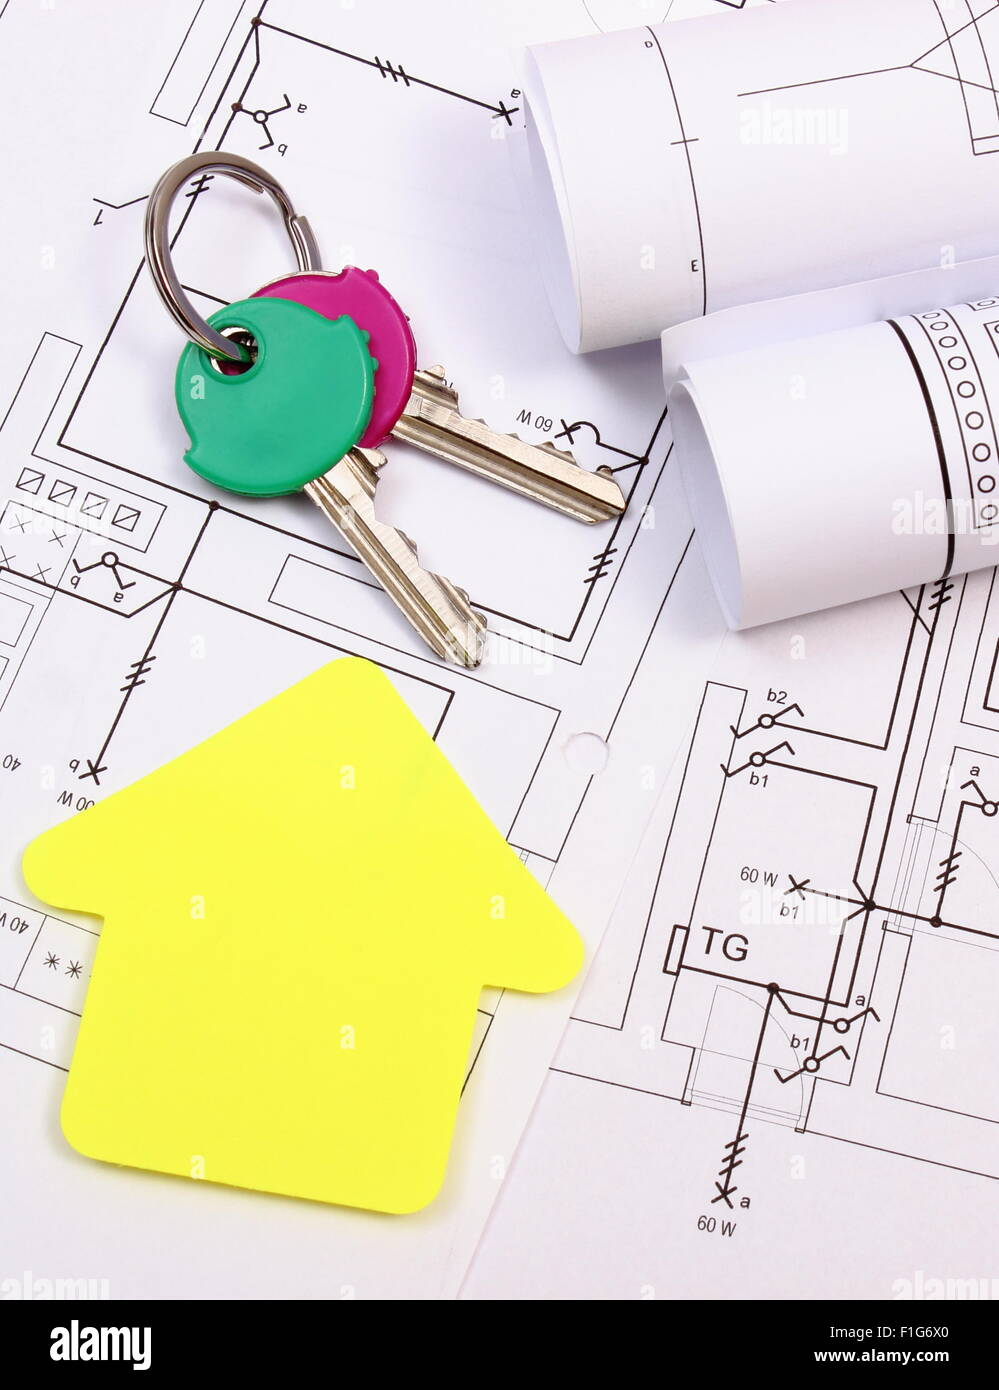 Electrical Housing Stock Photos Images Drawing For House Of Yellow Paper Home Keys And Rolls Diagrams Lying On Construction